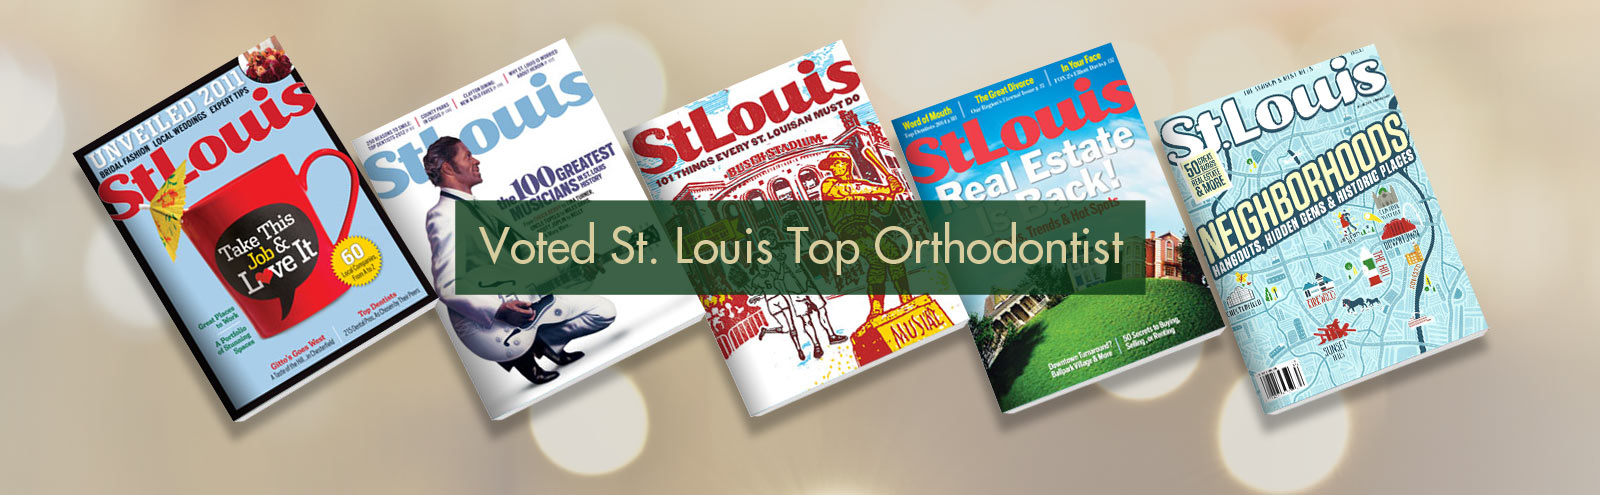 Voted St.Louis Top Orthodontist